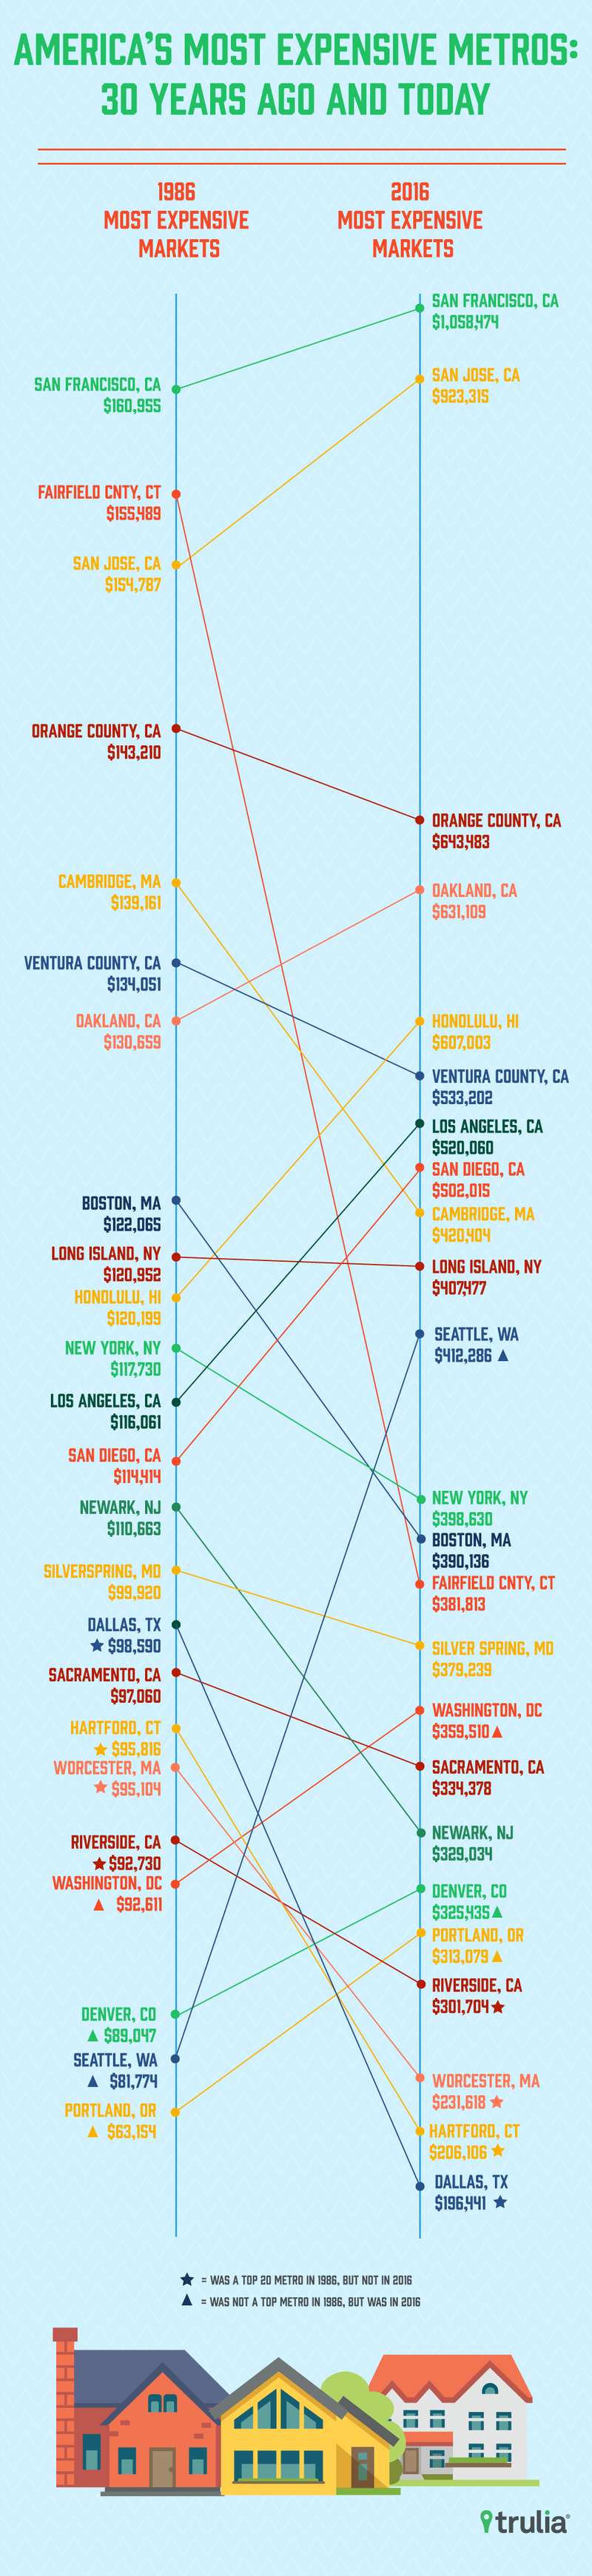 Cities With the Biggest Return on Home Value in the Past 30